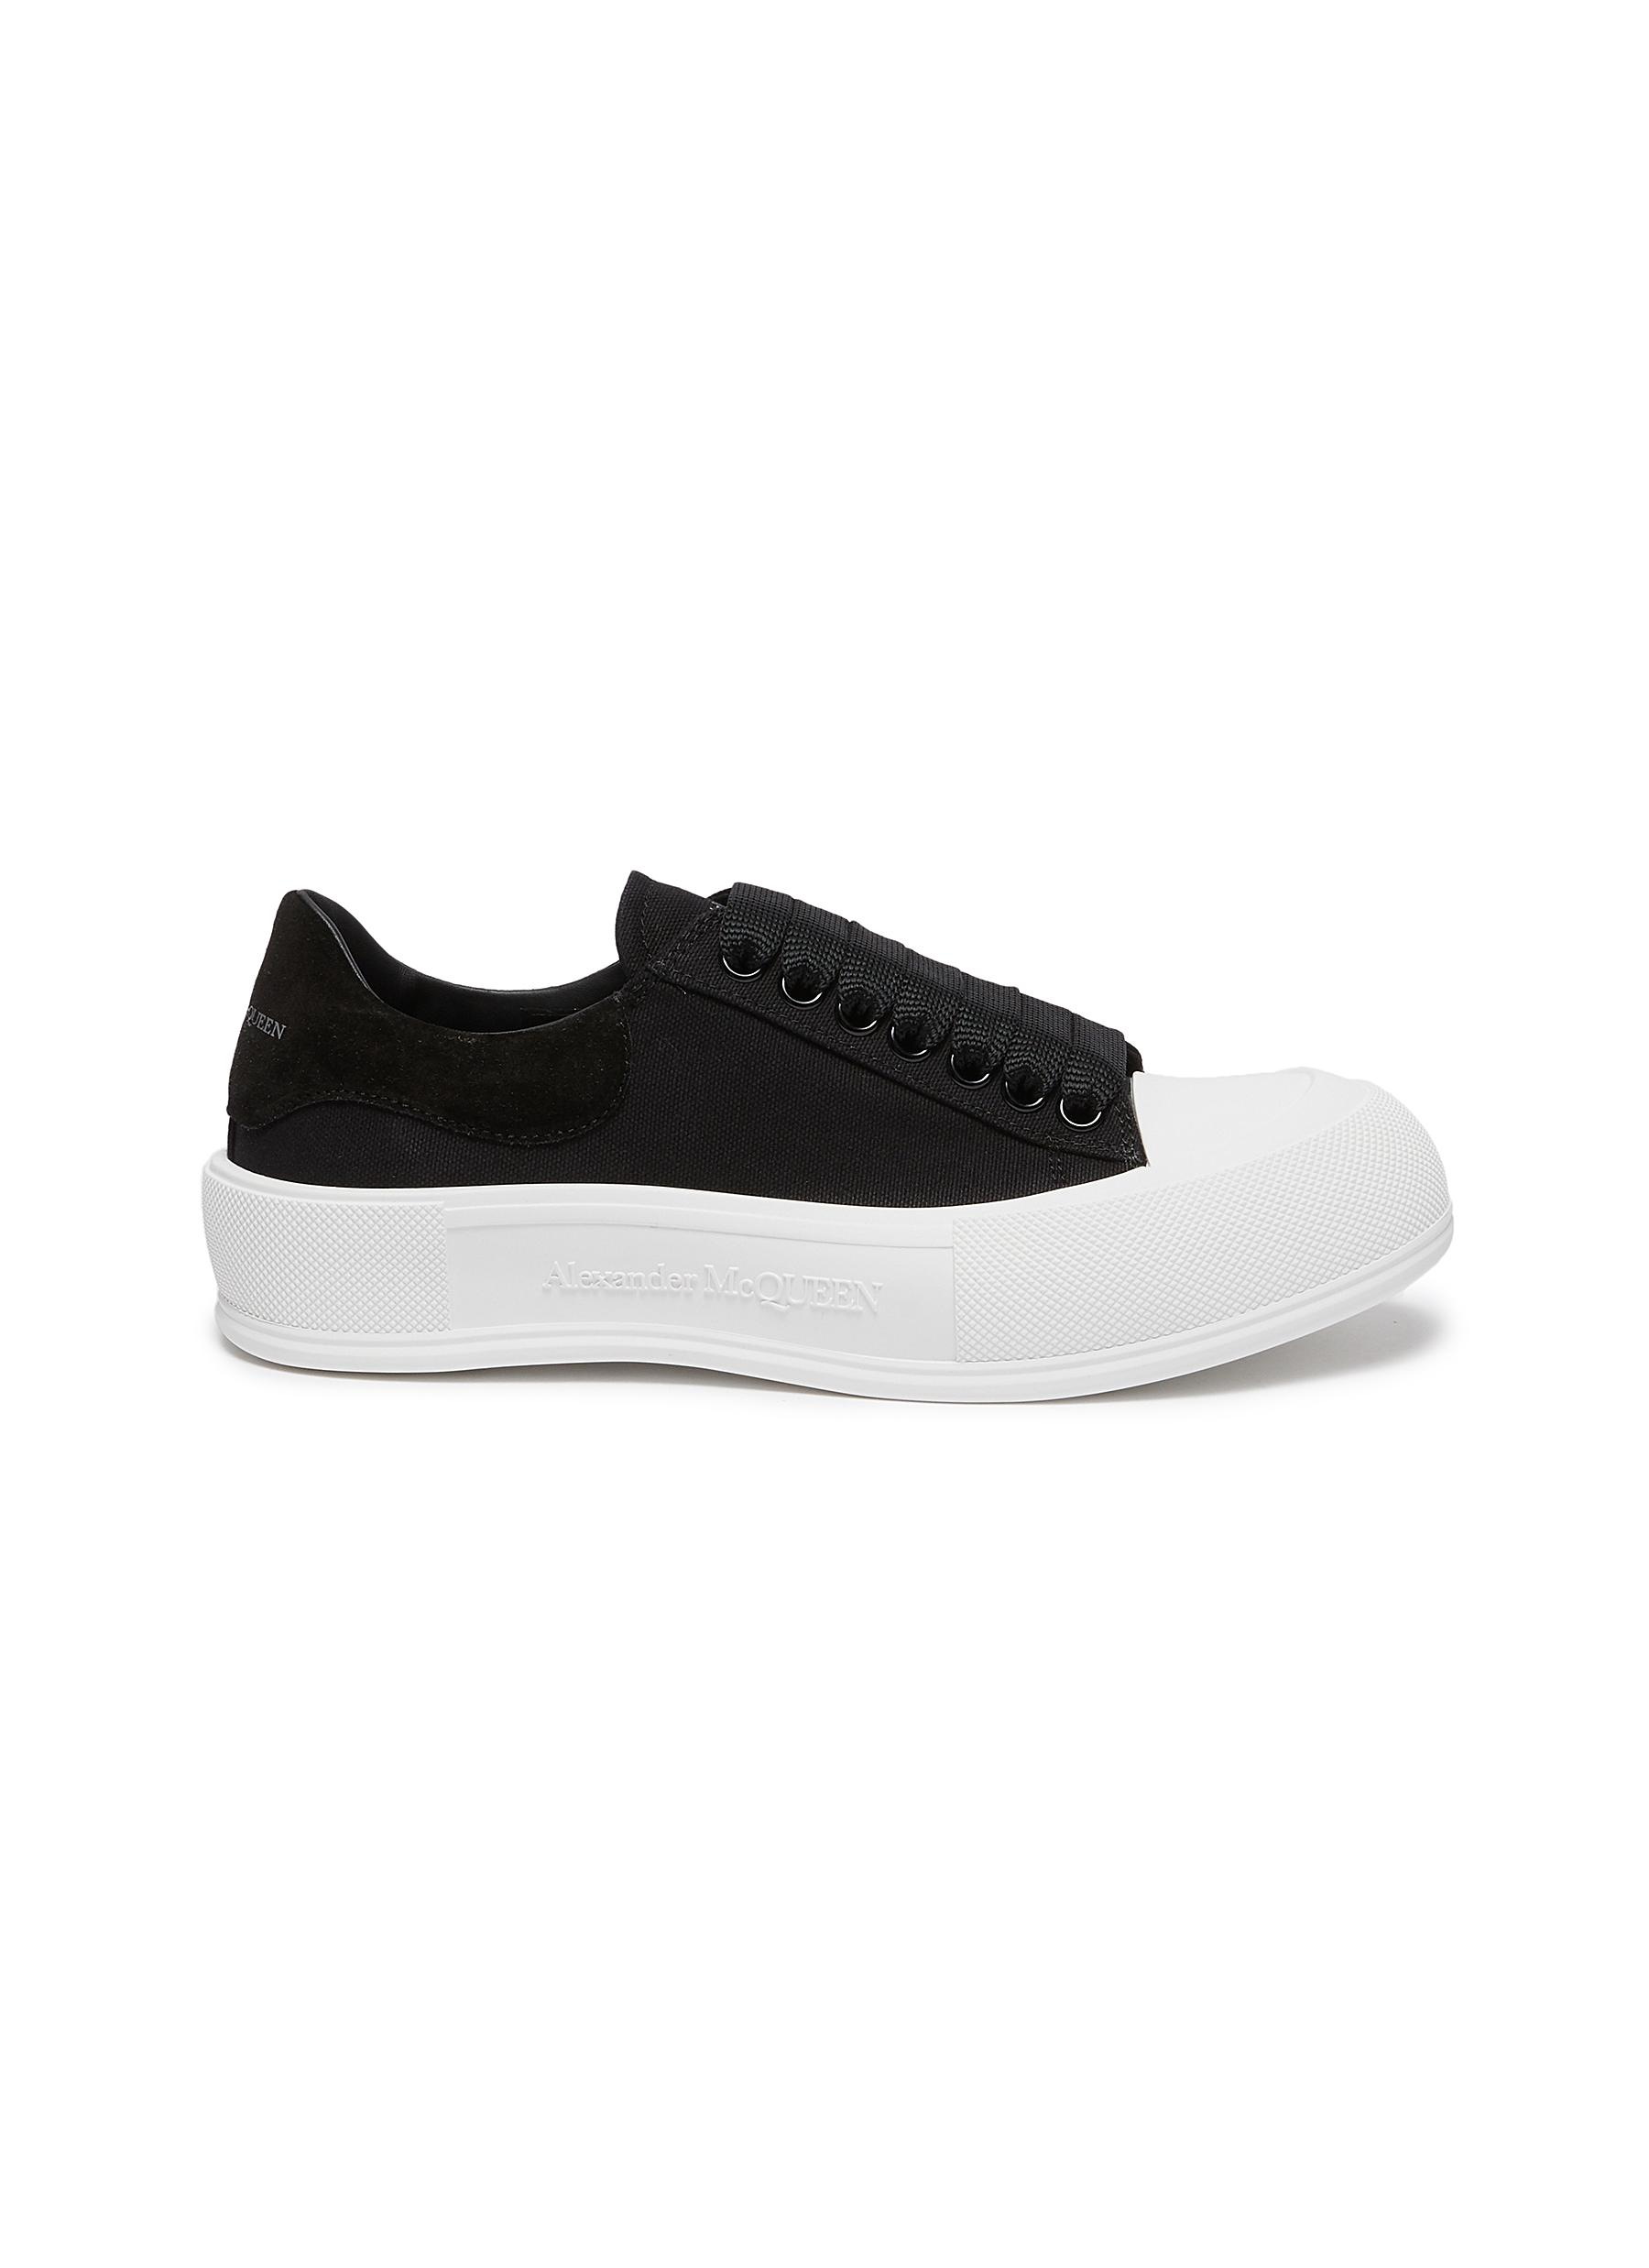 'Deck Plimsoll' lace-up sneakers